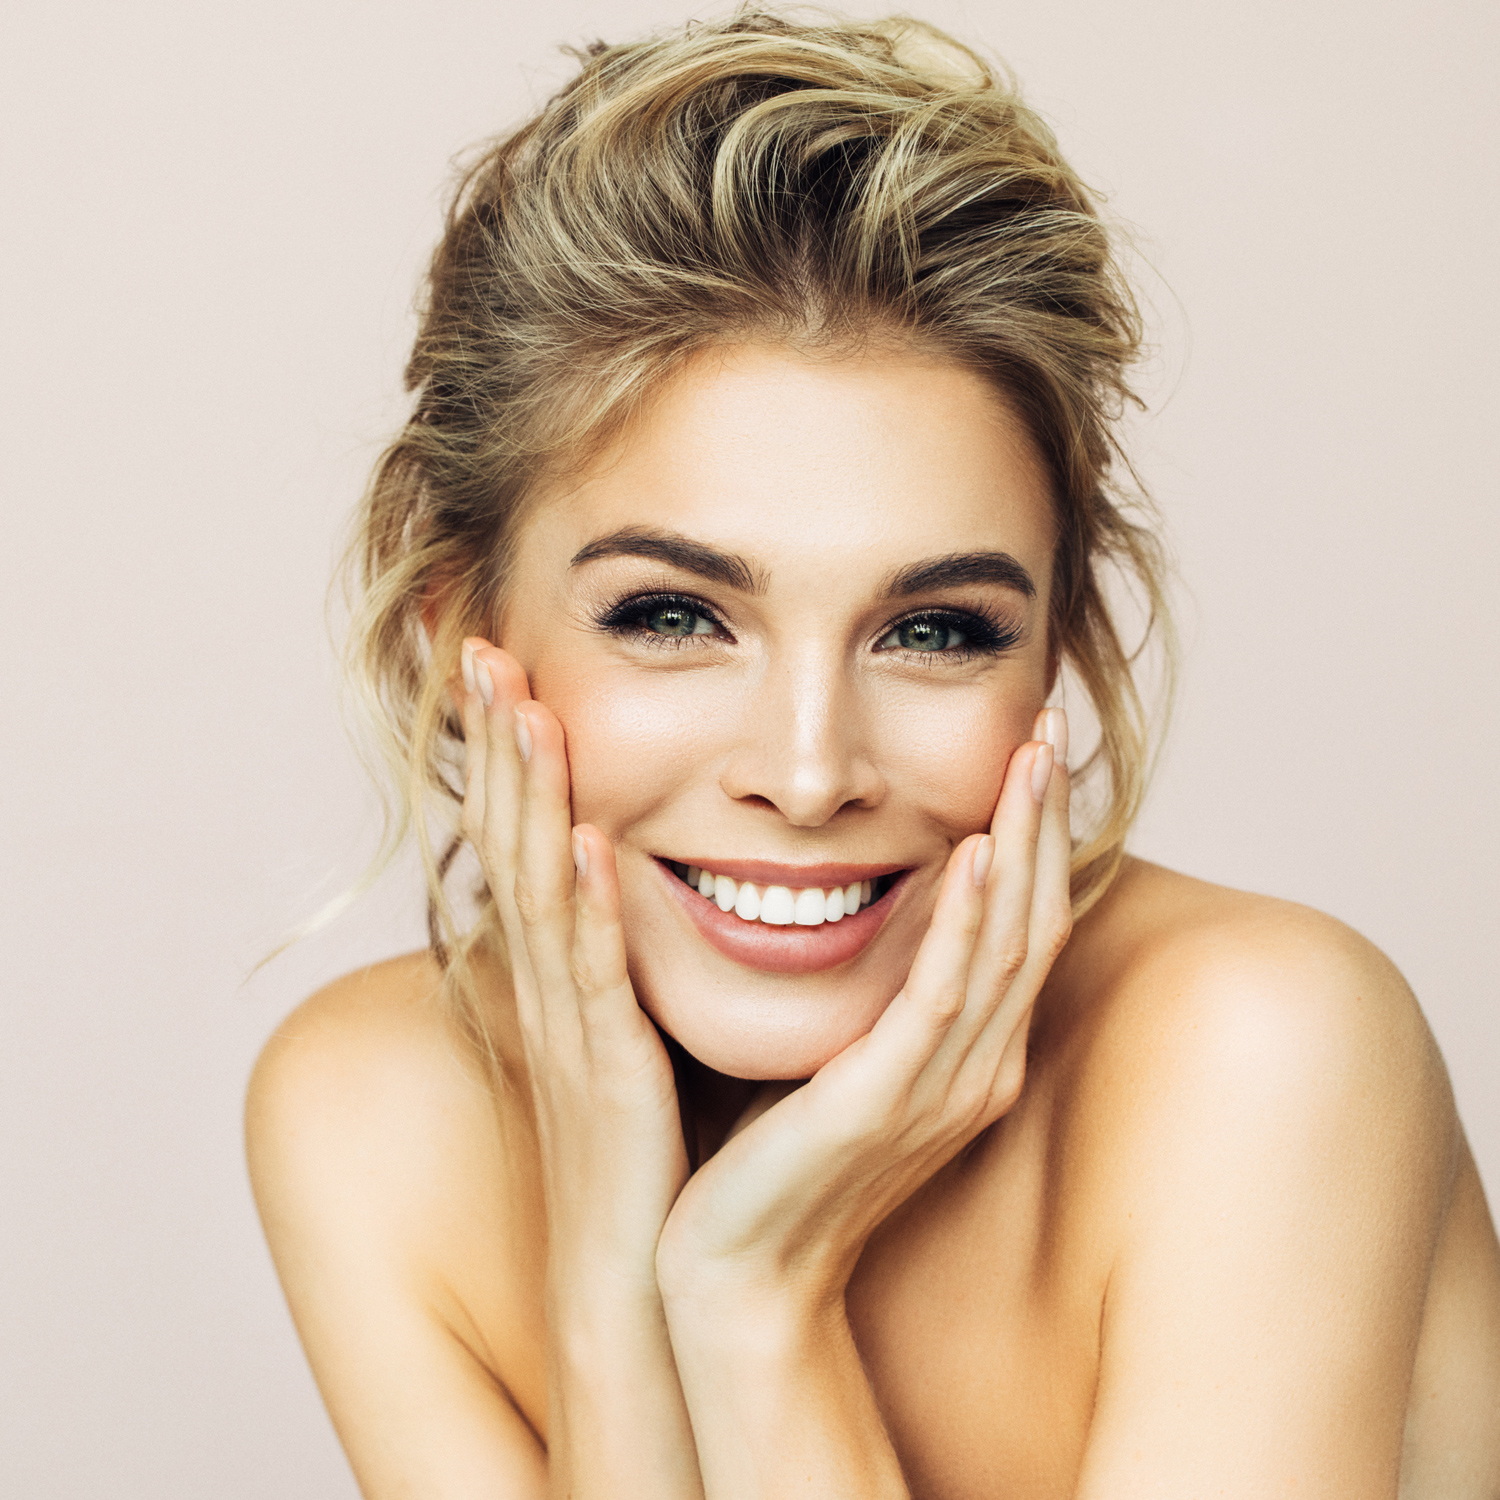 Why choose injectables? - Botox injections are a clinically-proven and safe choice for combatting certain natural signs of ageing. In some cases, you will only need one injectable treatment to see the desired results. You can also choose to target different problem areas during each Botox treatment depending on your individual goals and personalised treatment plan.